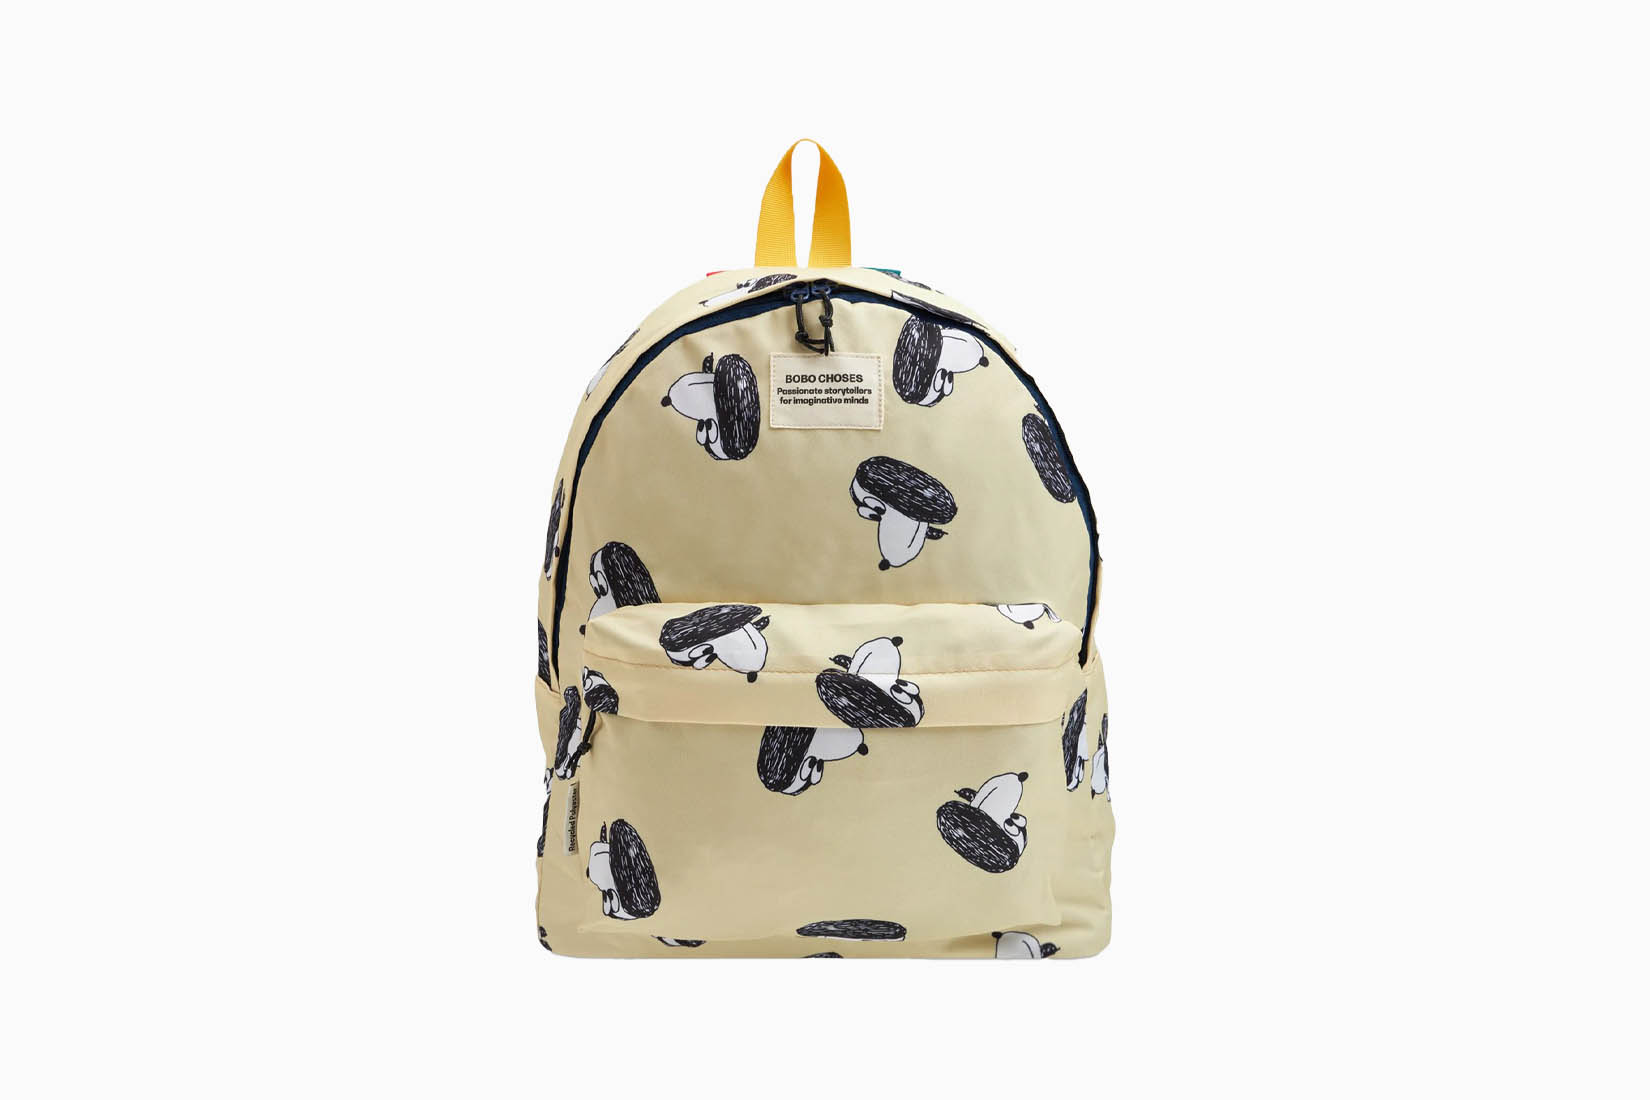 best gift kids bobo choses backpack review Luxe Digital